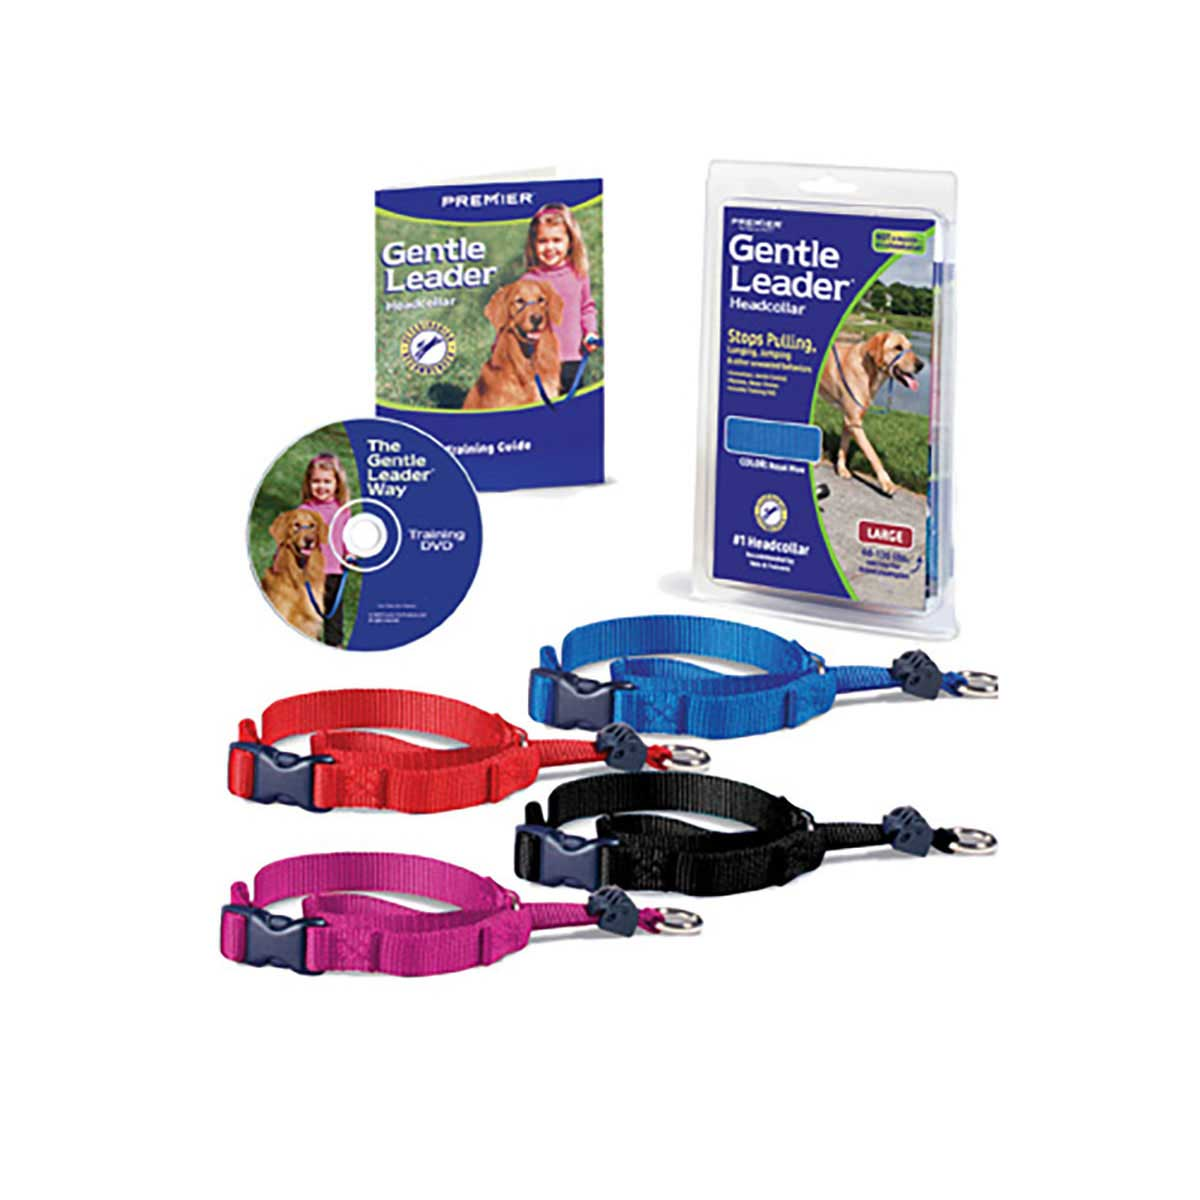 Gentle Leader Quick Release Head Collar for Large Dogs 60 - 130 lbs